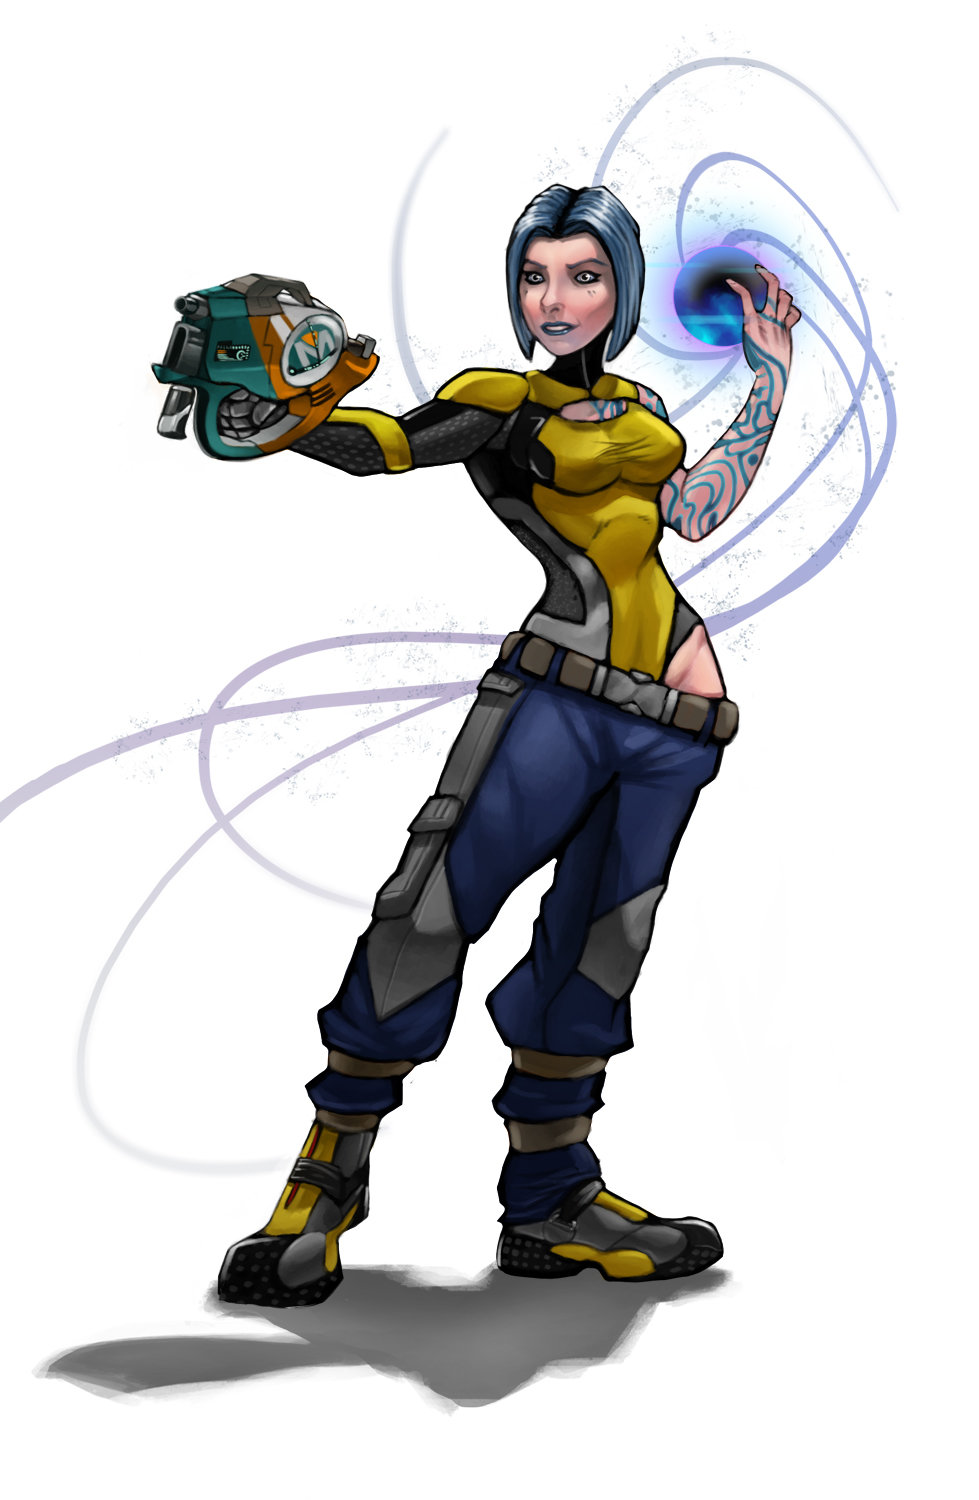 Gregory Salapack - Maya the Siren from Borderlands 2